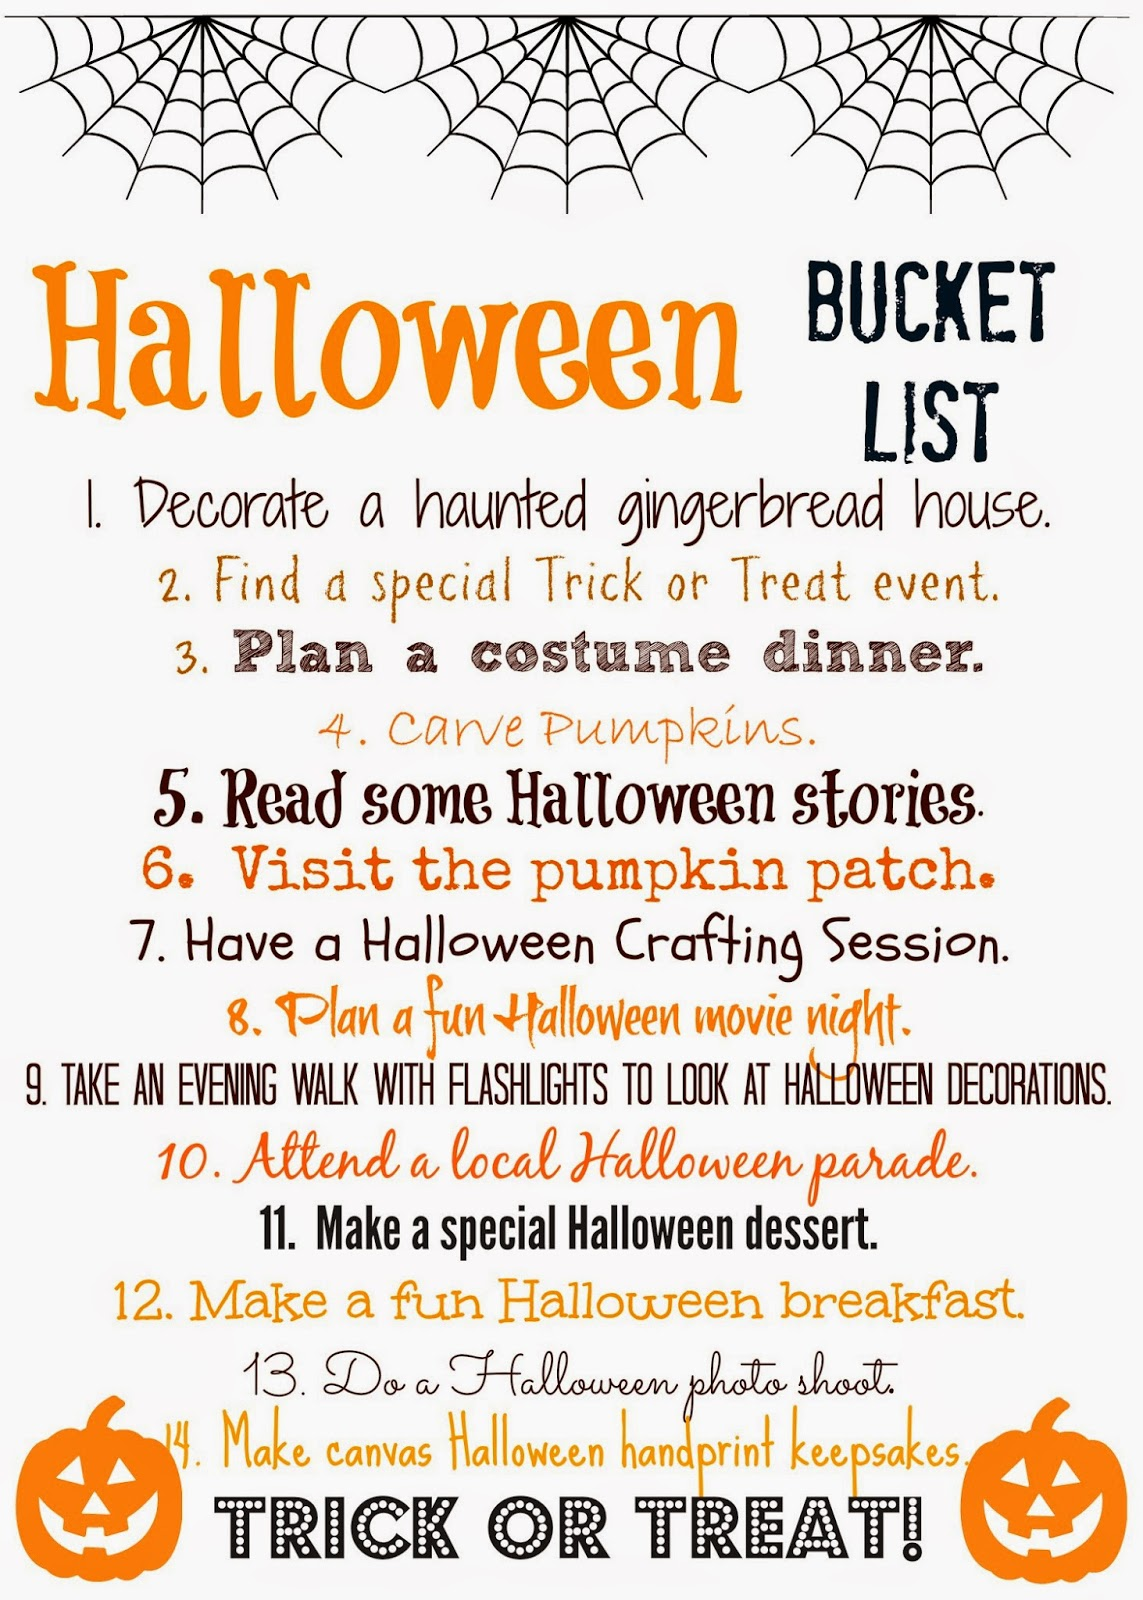 Halloween Bucket List (Free Printable) : The Chirping Moms